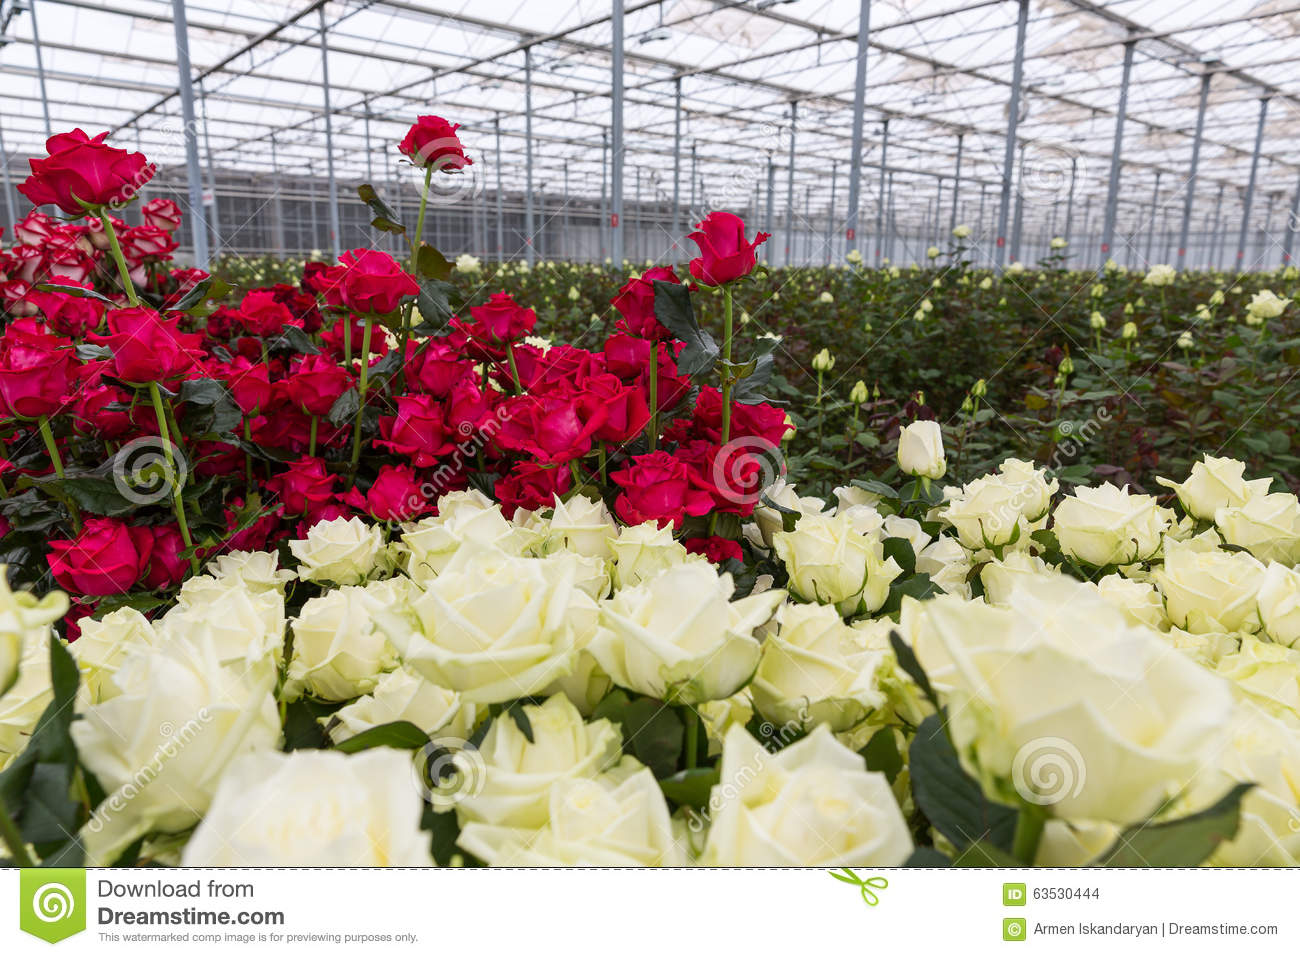 Greenhouse Red And White Roses Stock Photo.